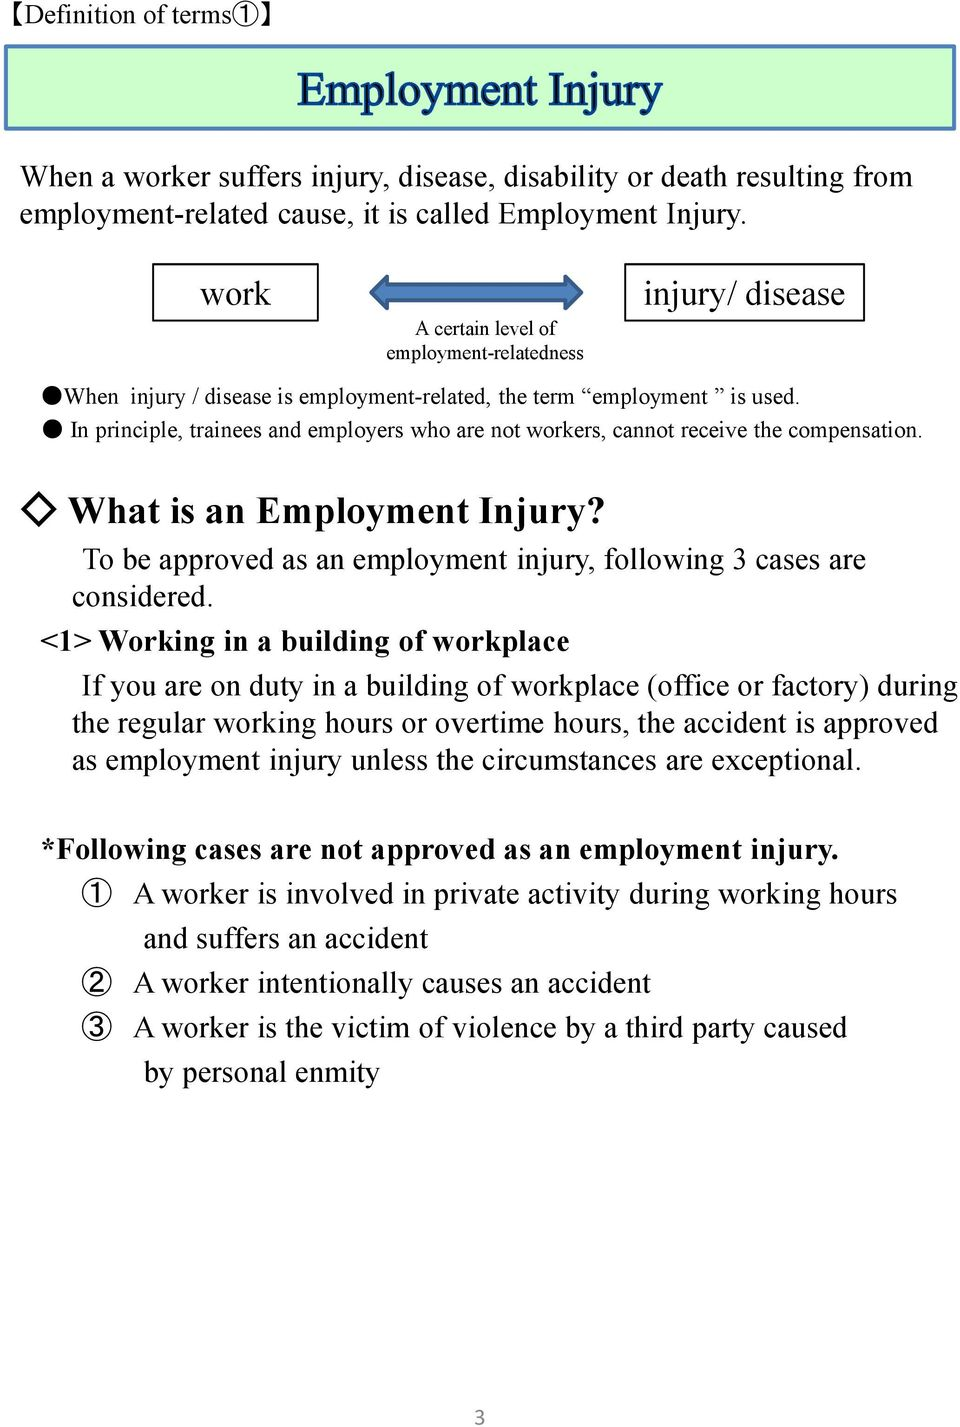 In principle, trainees and employers who are not workers, cannot receive the compensation. What is an Employment Injury? To be approved as an employment injury, following 3 cases are considered.